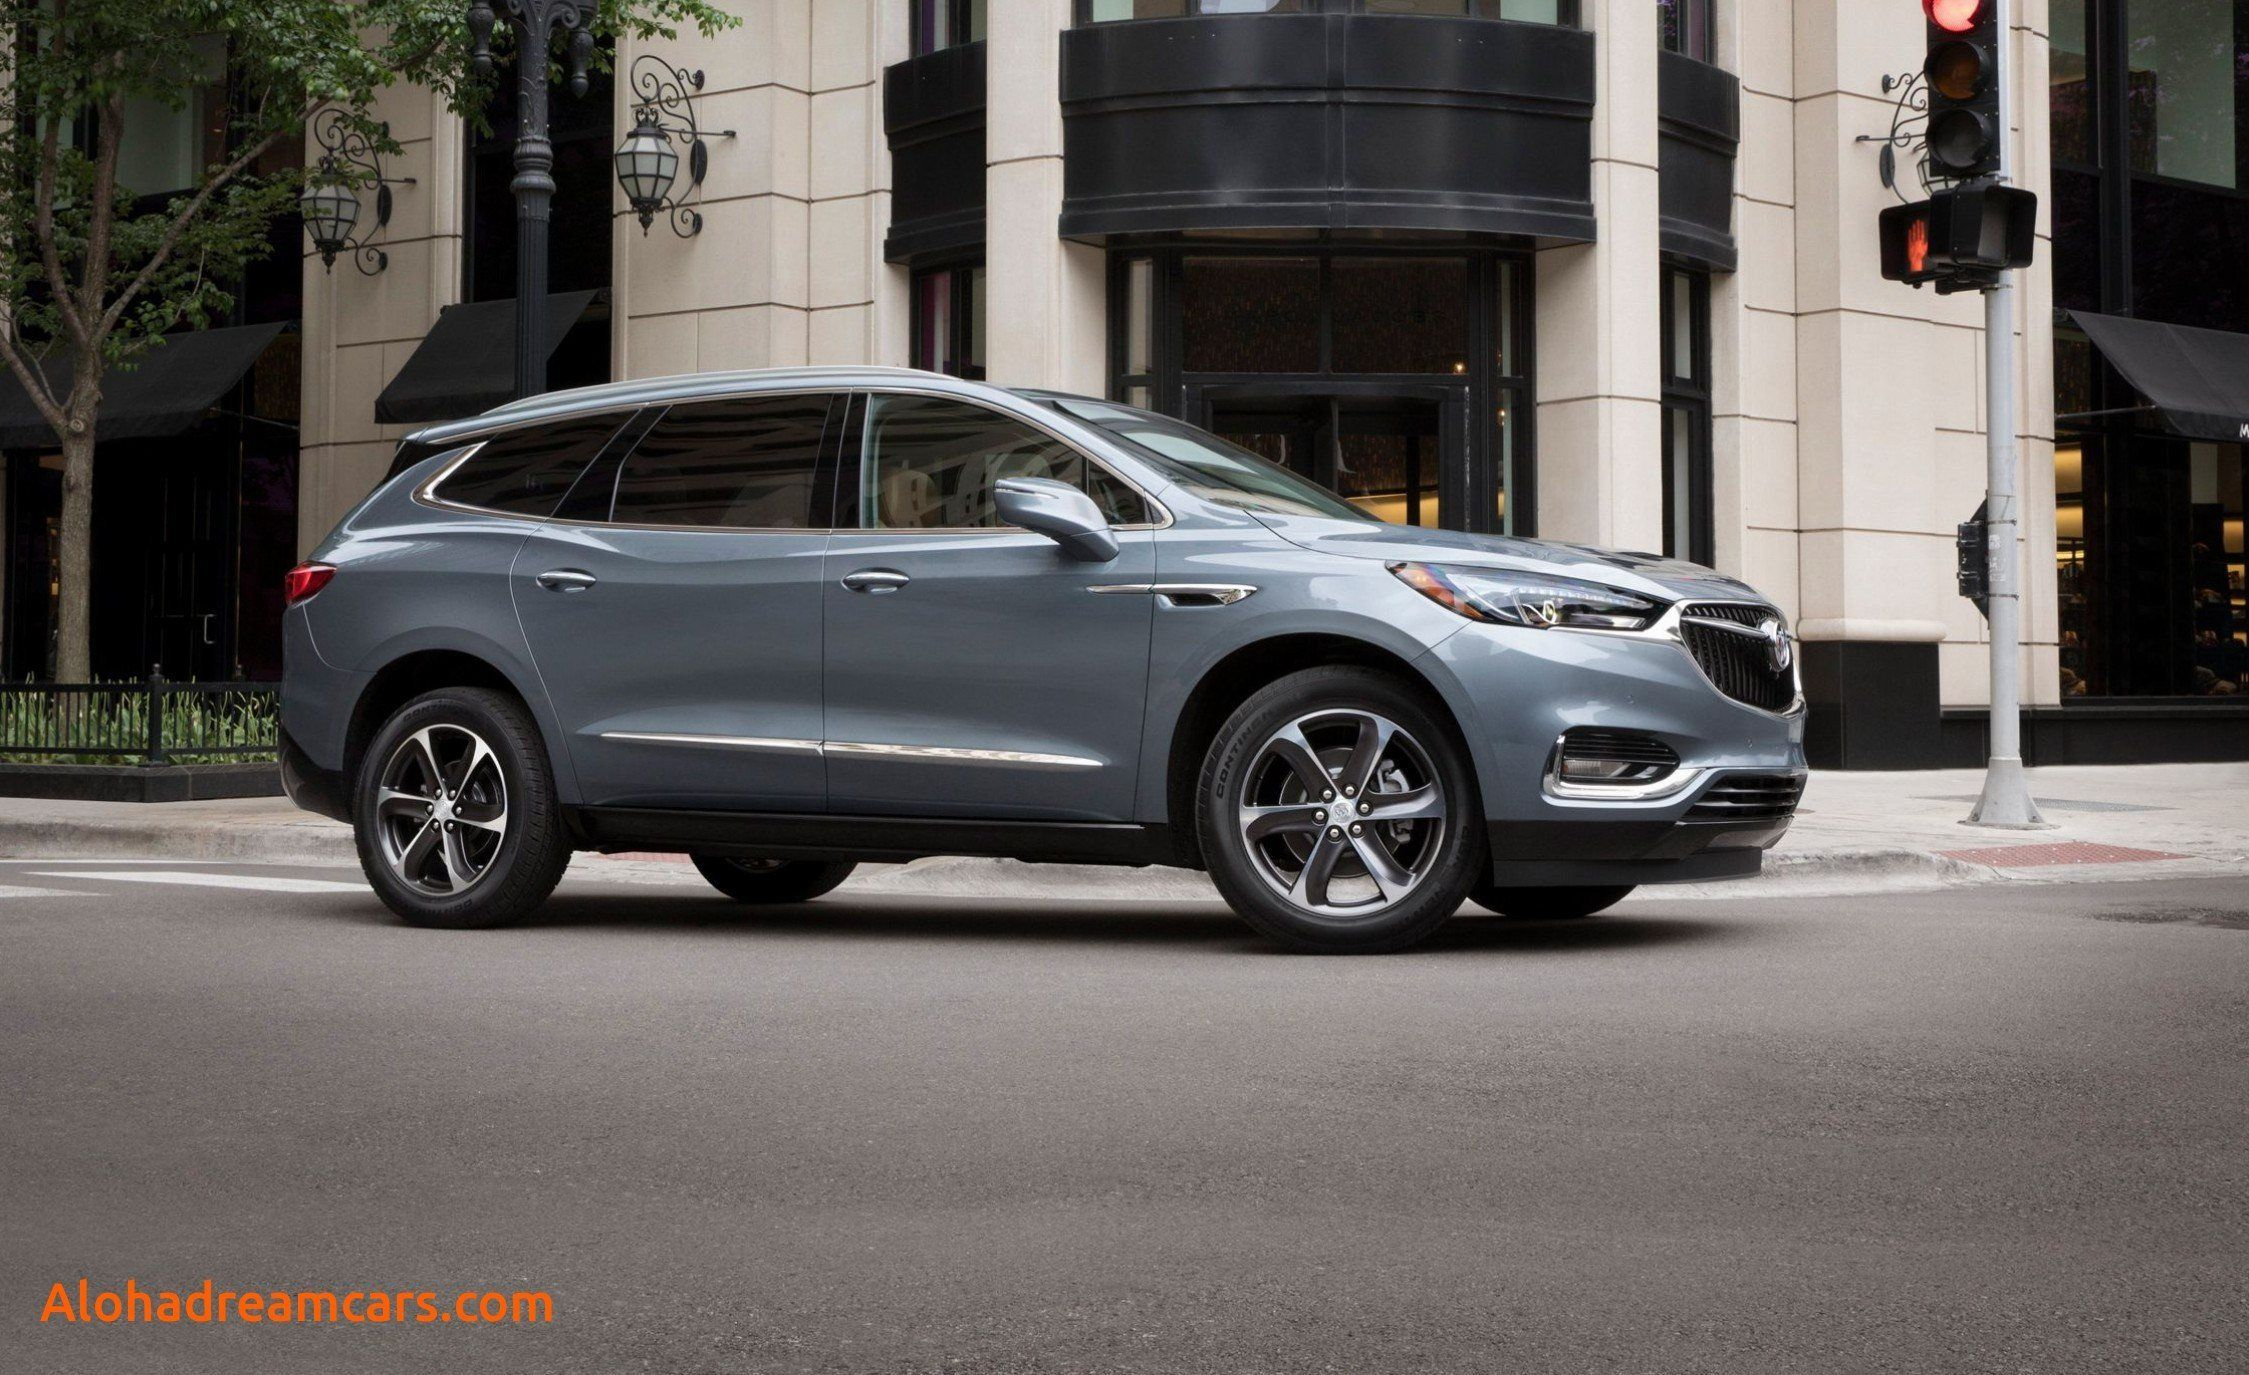 2021 Buick Enclave Spy Photos Exterior In 2020 Buick Enclave Buick Signs Youre In Love